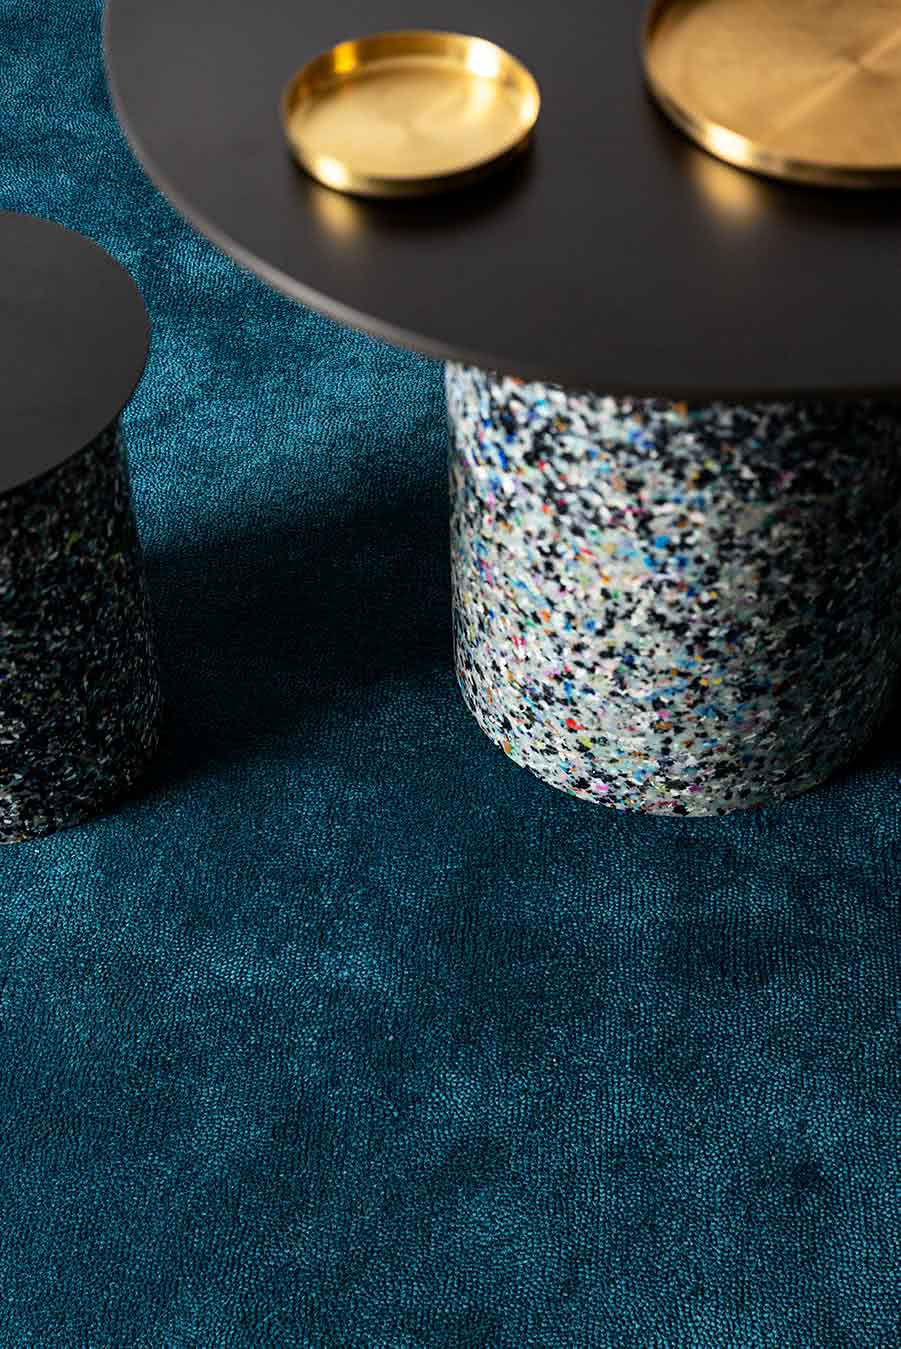 Close up dining room view of textured Napoleon Cut Pile rug in teal colour